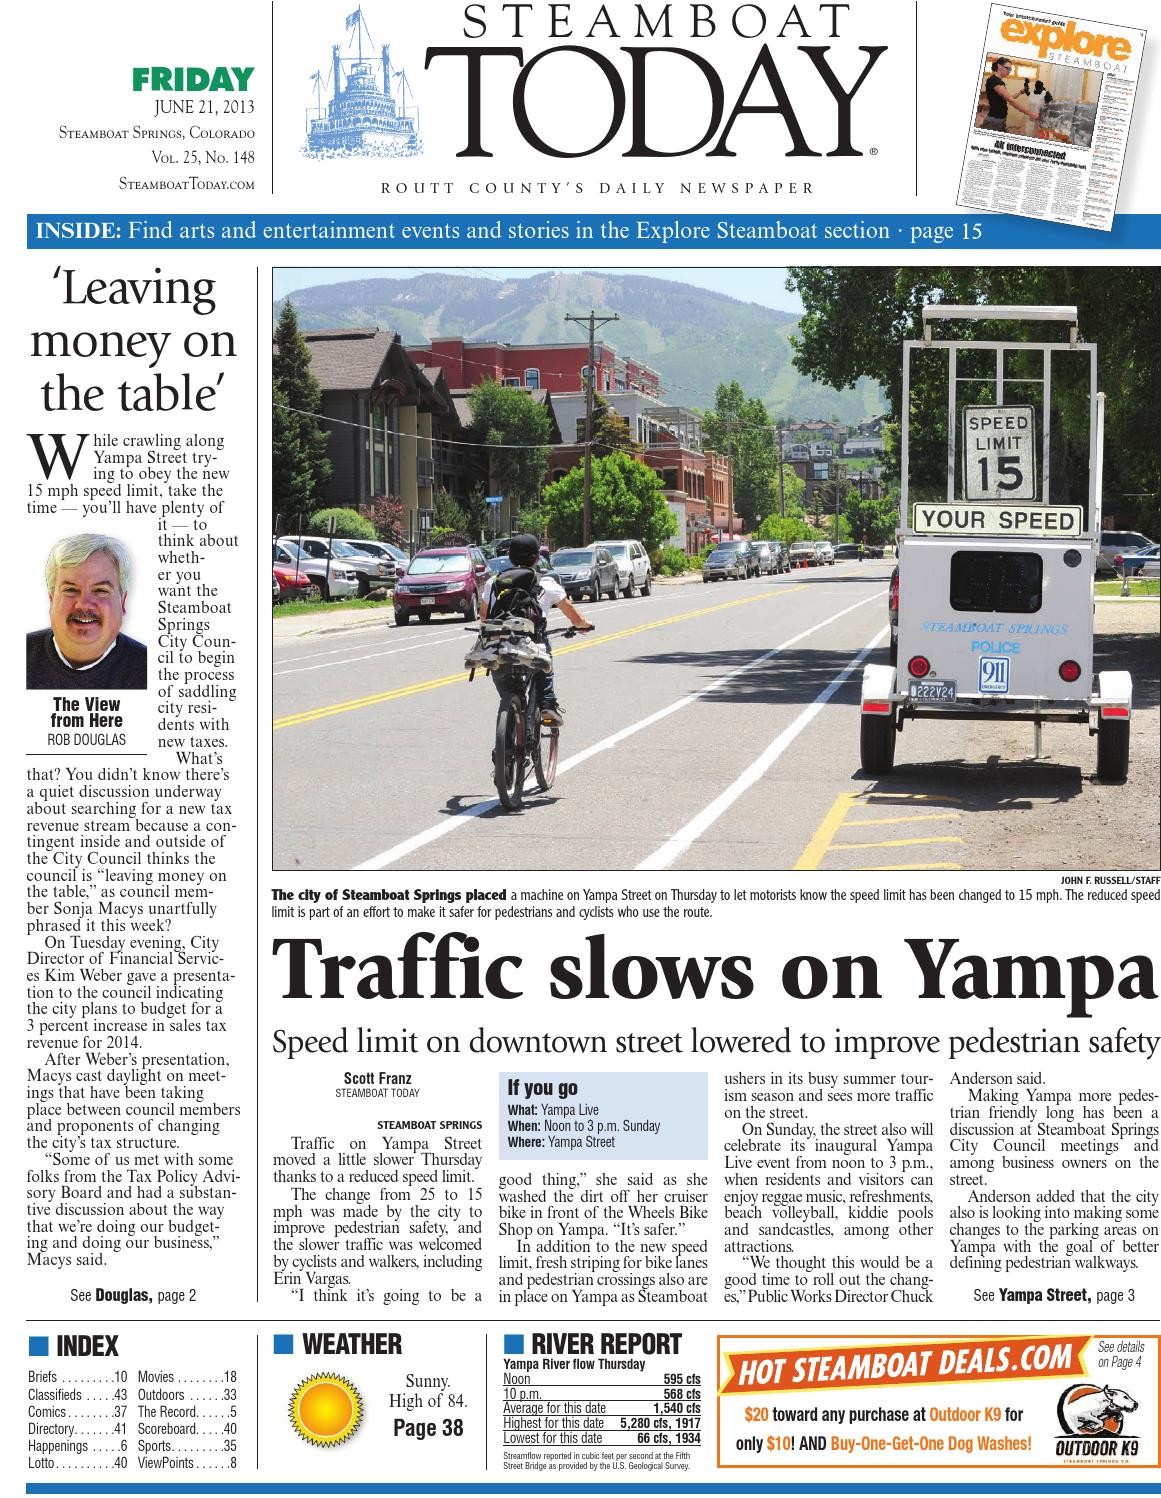 Steamboat Today, June 21, 2013 by Steamboat Pilot & Today - issuu on